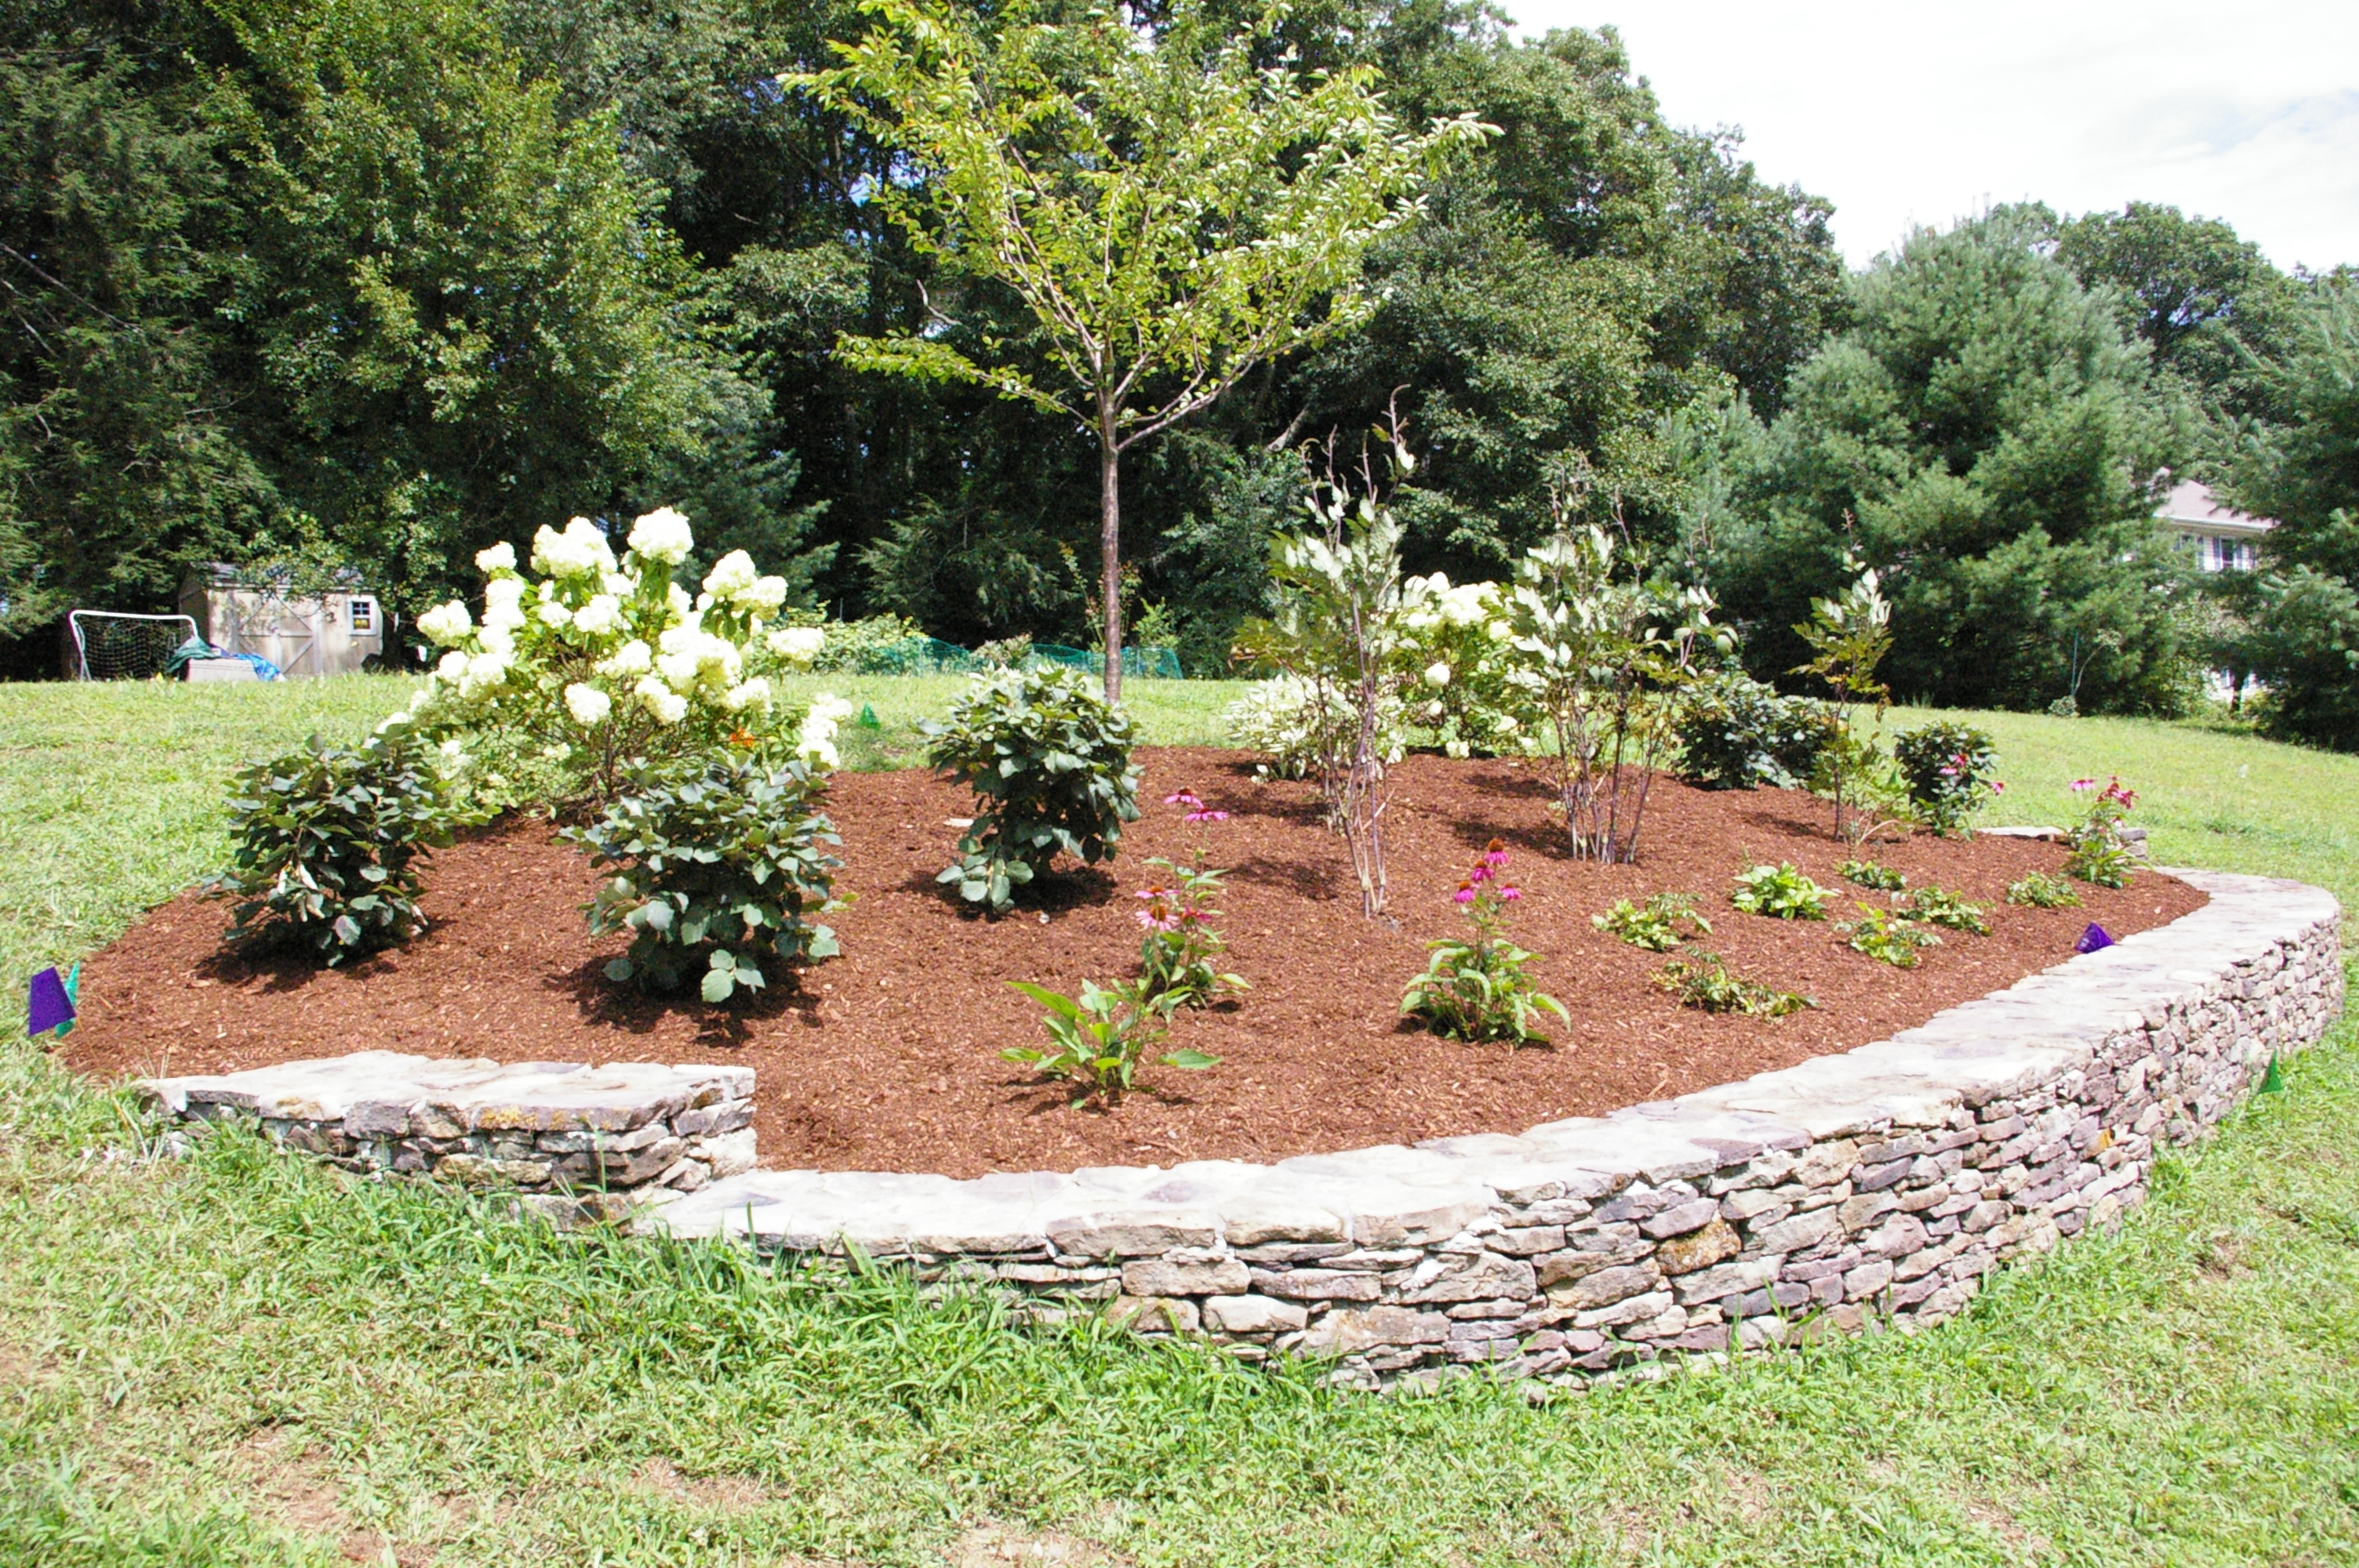 Image of: A Berm For Curb Appeal Land Designs Unlimited Llc Inside Landscape Berm Best Design Landscape Berm